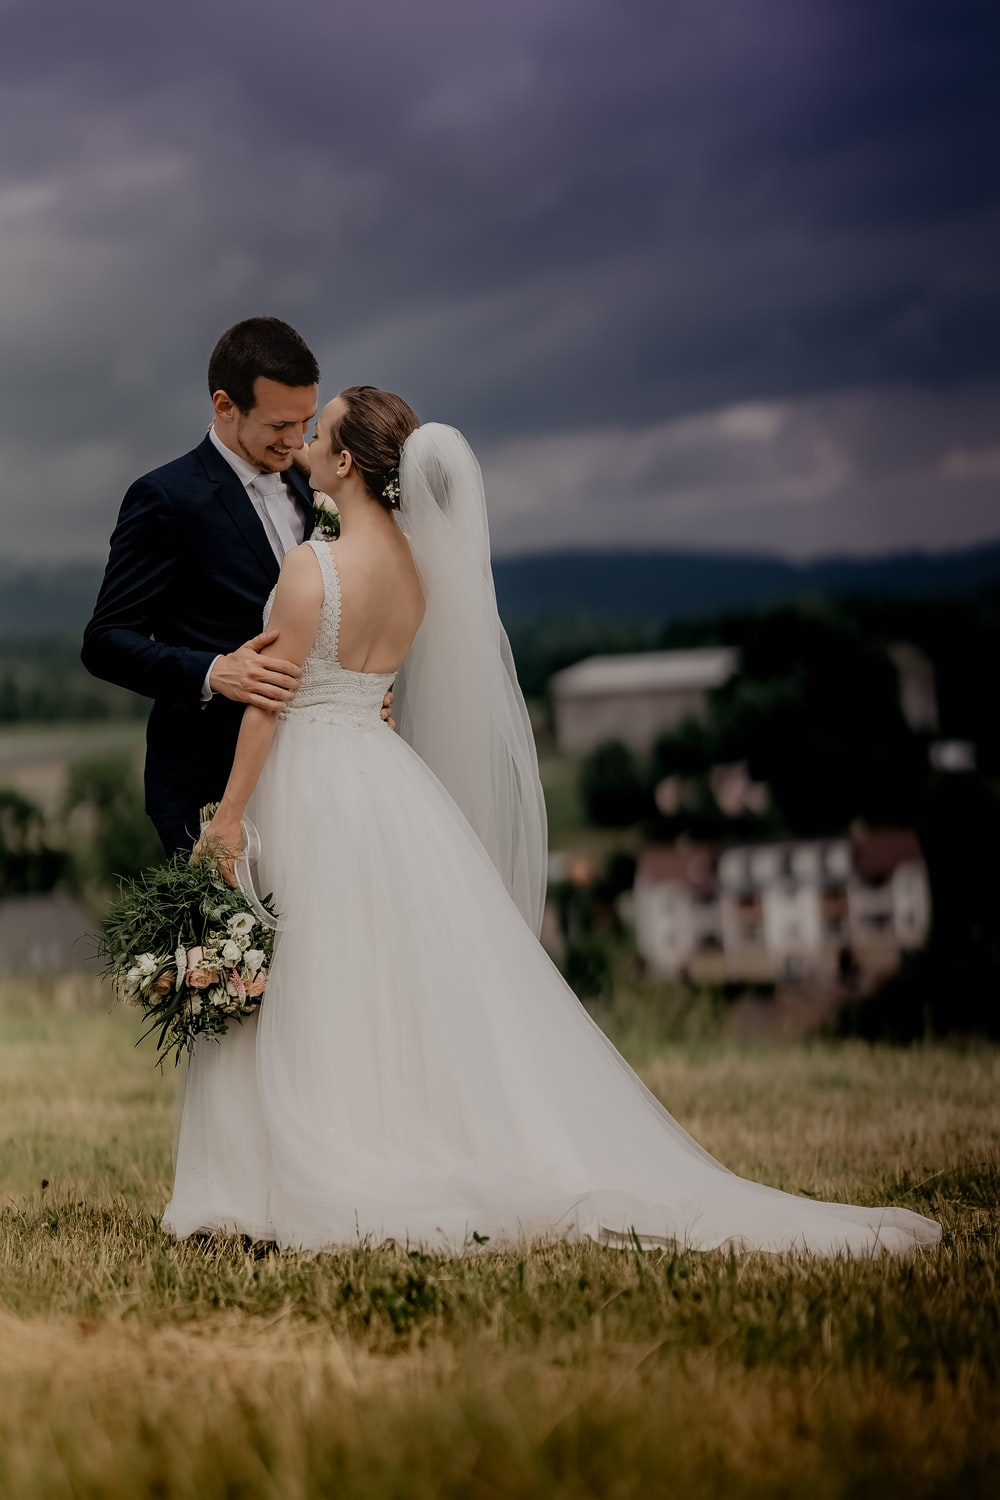 man in black suit kissing woman in white wedding dress on green grass field during daytime